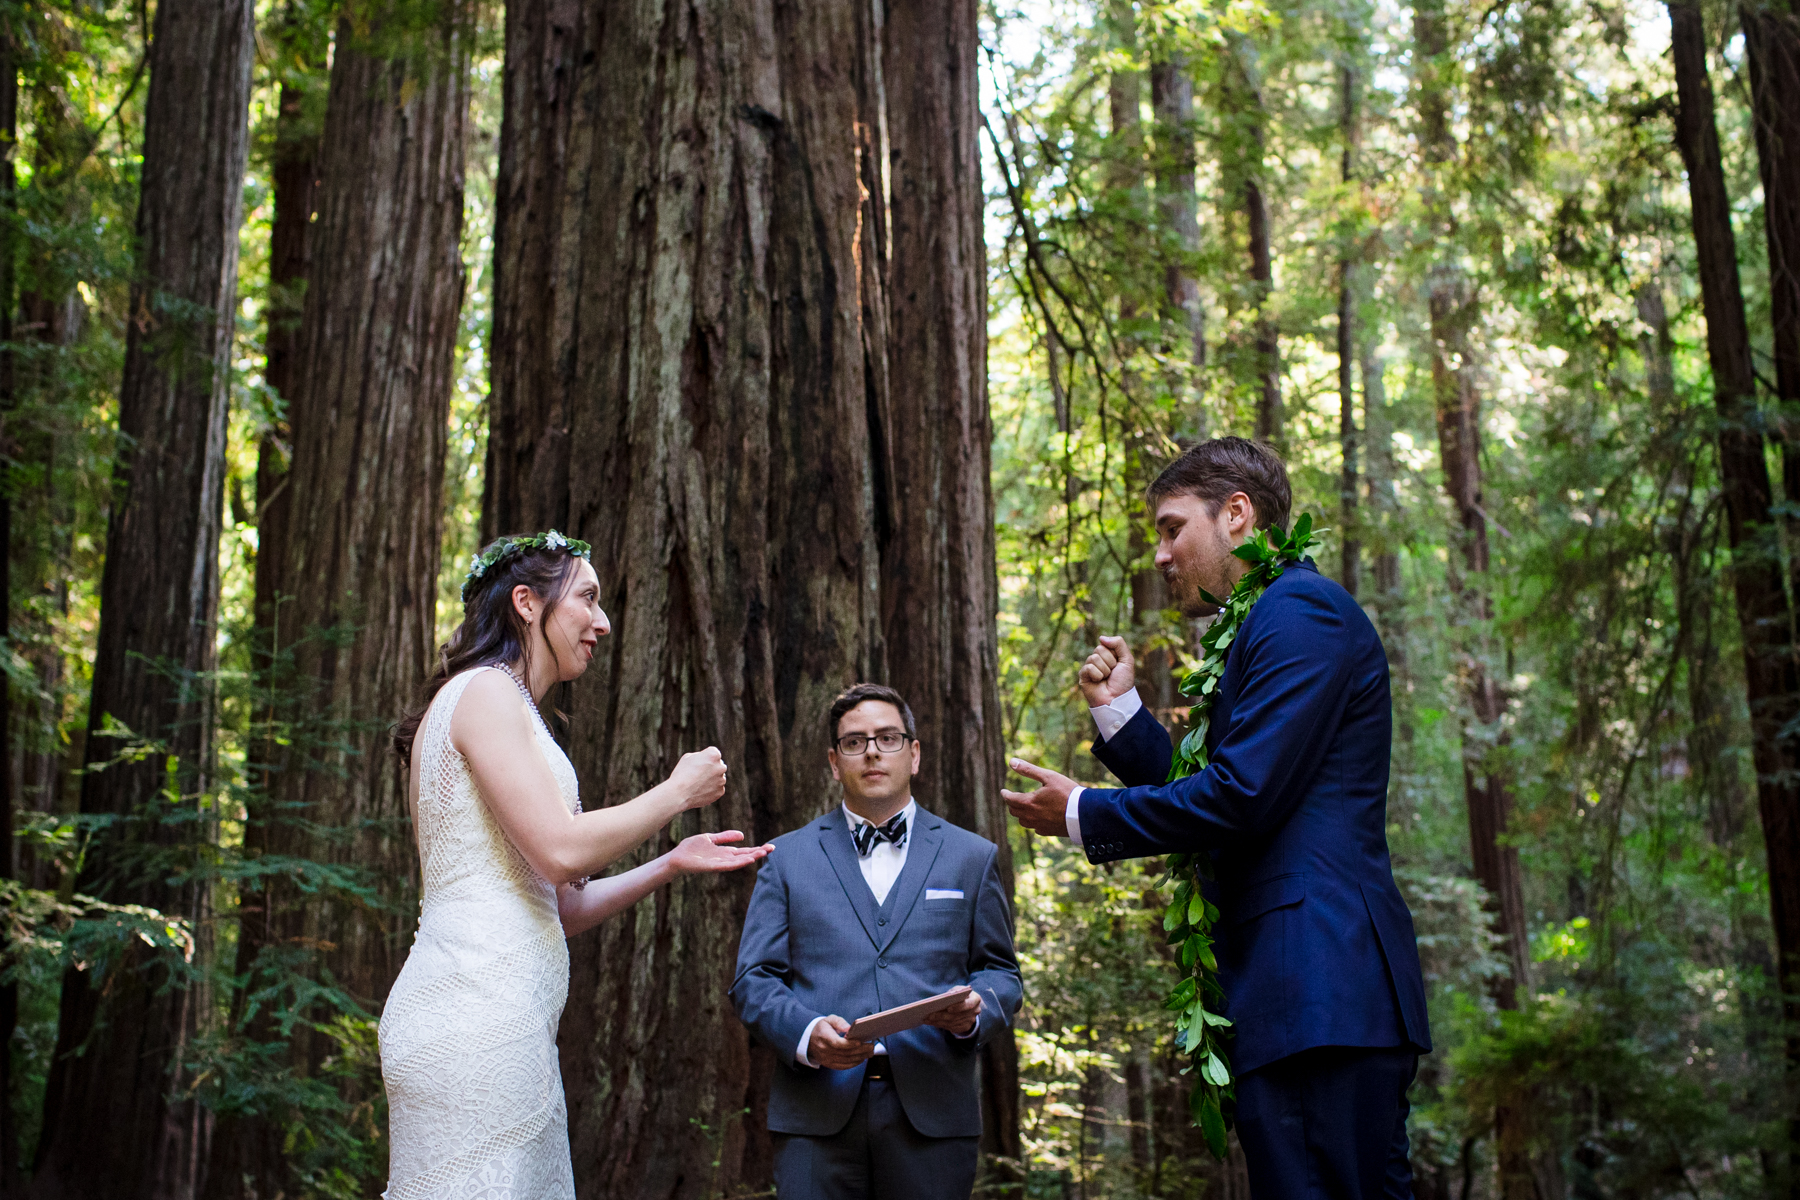 Siliang Wang, of California, is a wedding photographer for -